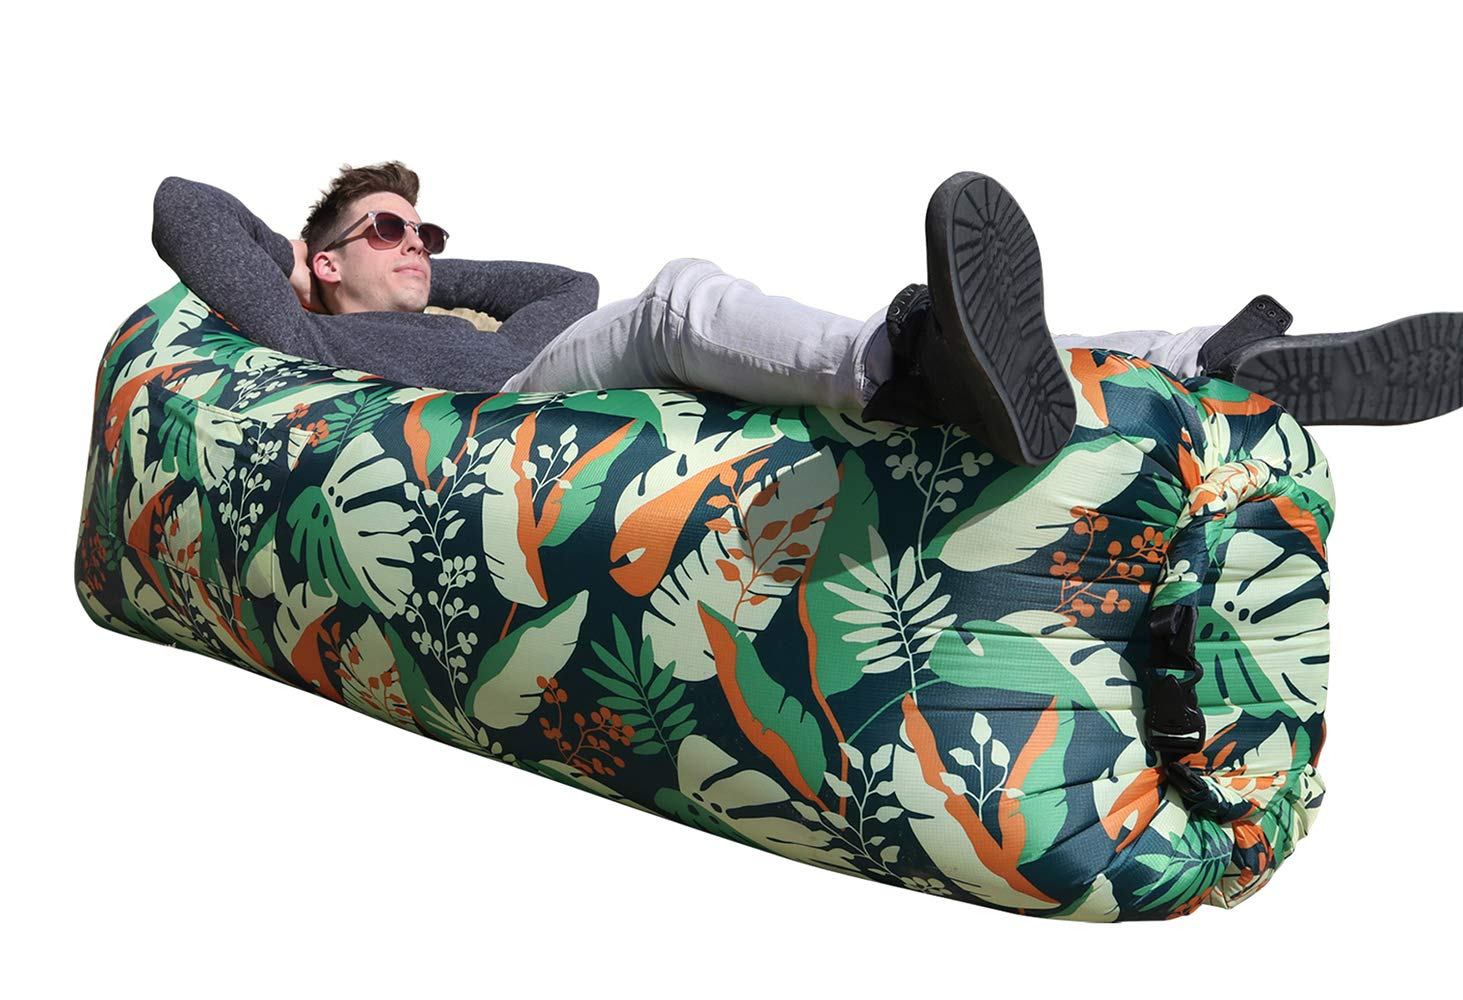 WEKAPO Inflatable Lounger Air Sofa Hammock-Portable,Water Proof& Anti-Air Leaking Design-Ideal Couch for Backyard Lakeside Beach Traveling Camping Picnics & Music Festivals (G Leaf) by WEKAPO